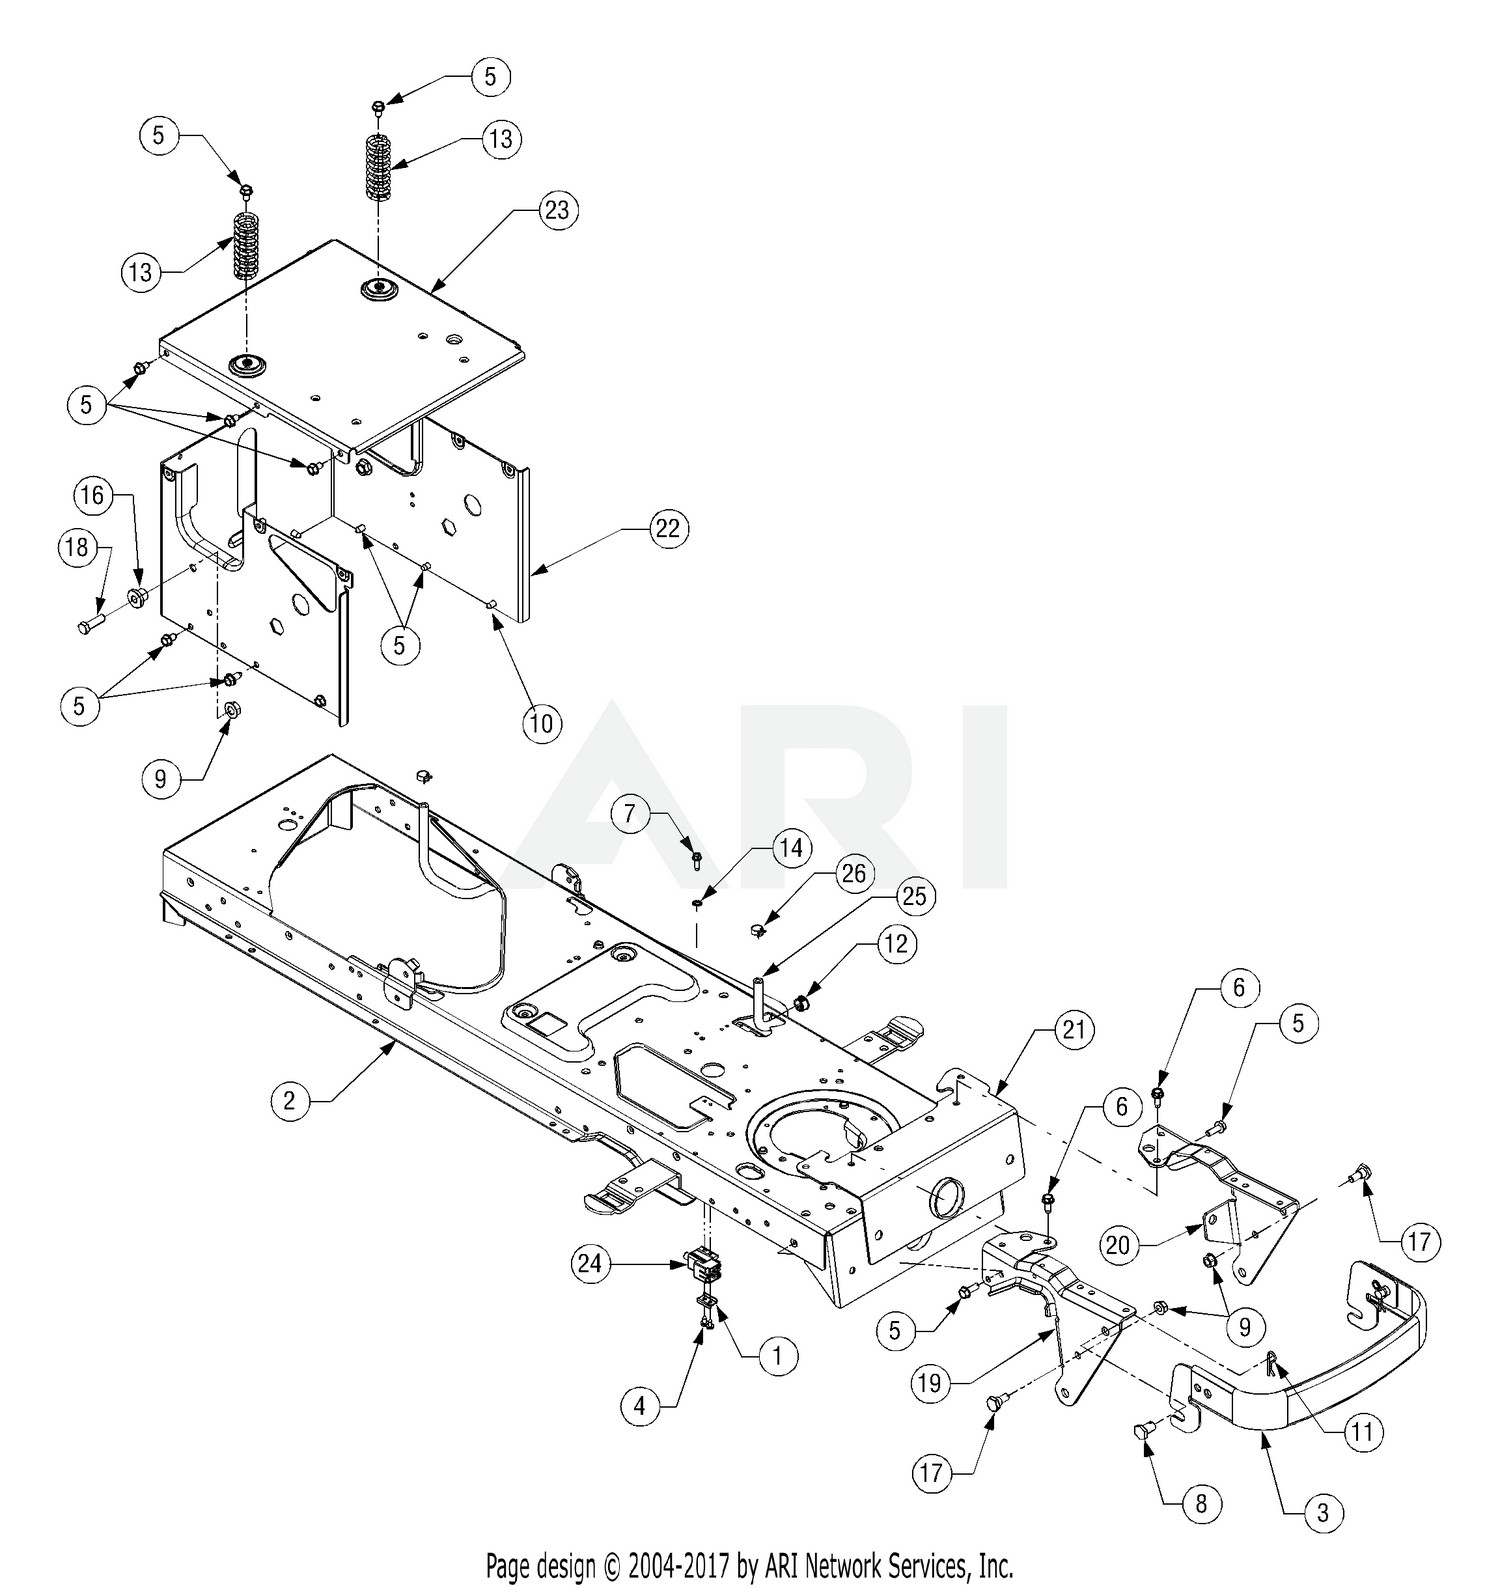 Cub Cadet Lt1042 Parts Diagram Cub Cadet Parts Diagrams Cub Cadet Lt1042 Tractor 2007 & before Of Cub Cadet Lt1042 Parts Diagram